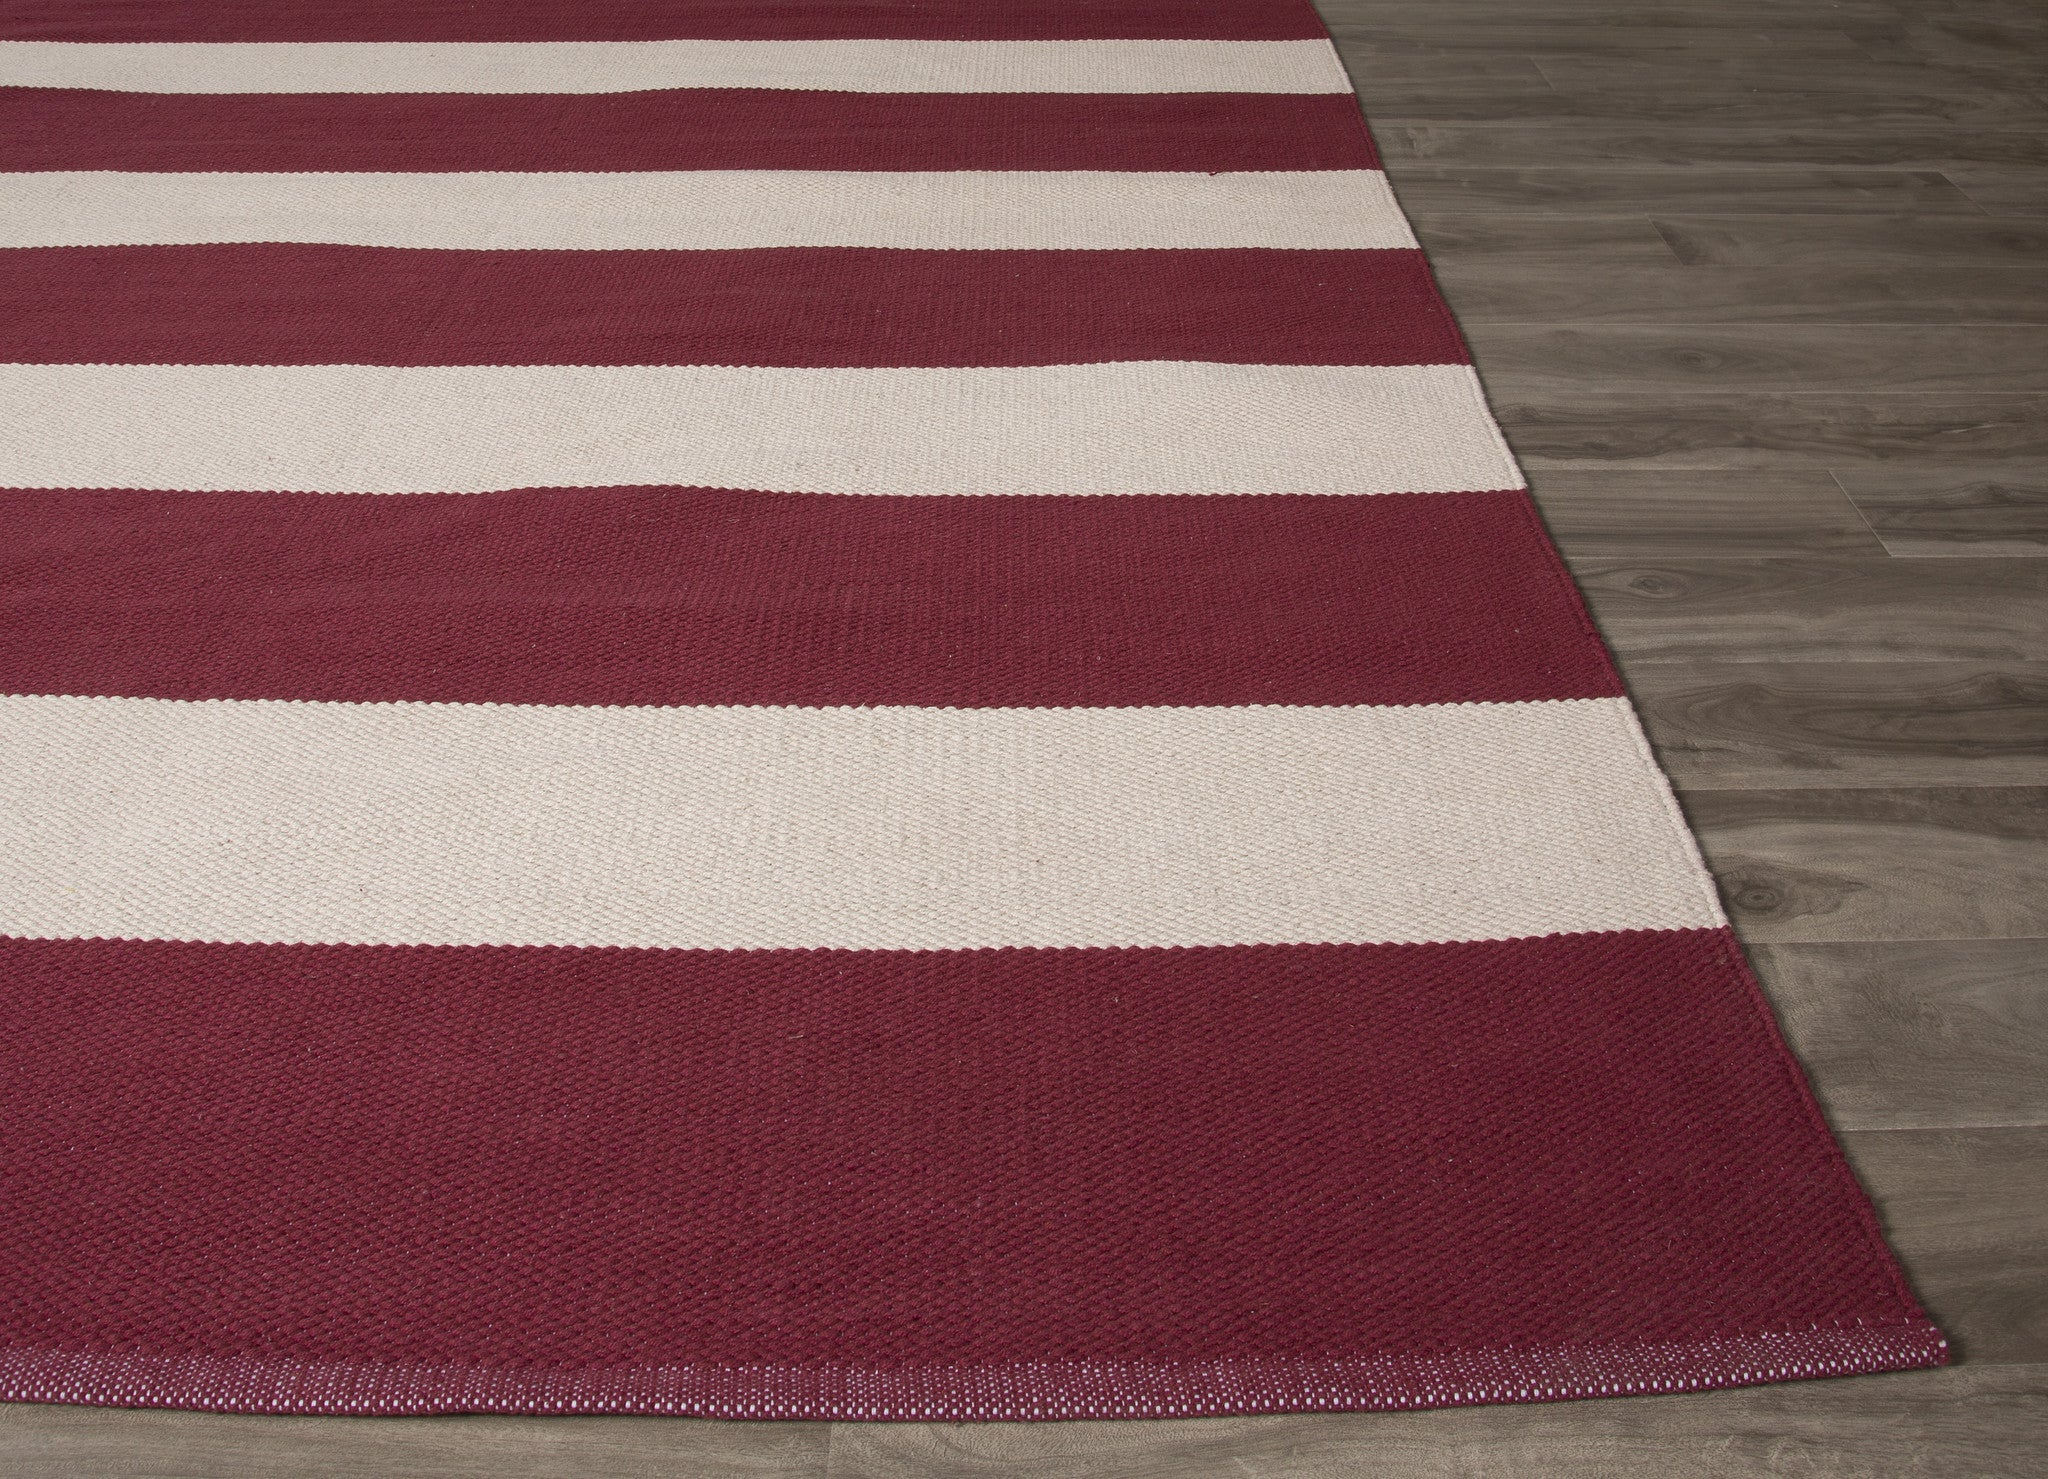 Jaipur rugs flatweave stripe pattern red white cotton area for Red and white striped area rug